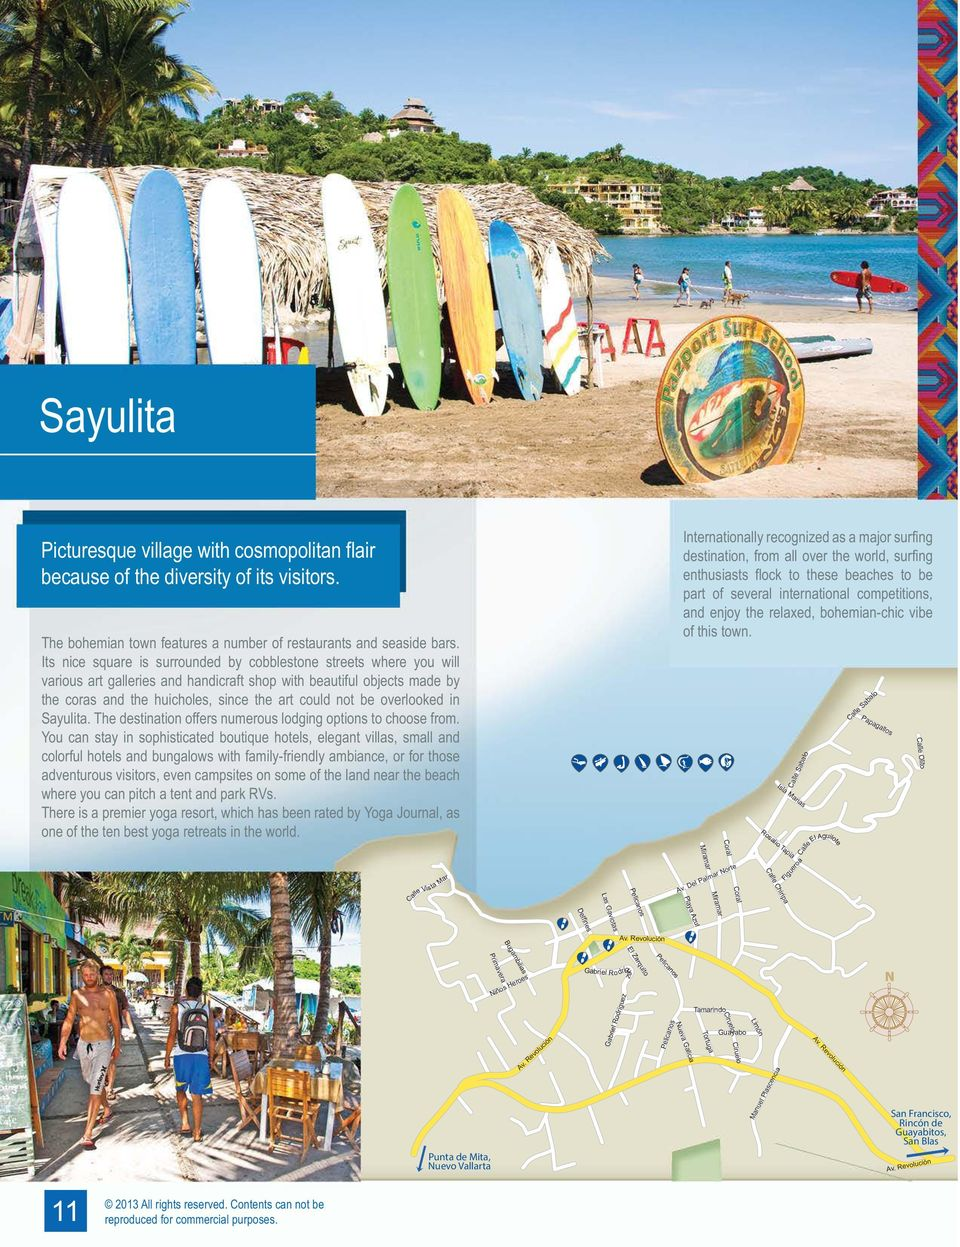 overlooked in Sayulita. The destination offers numerous lodging options to choose from.